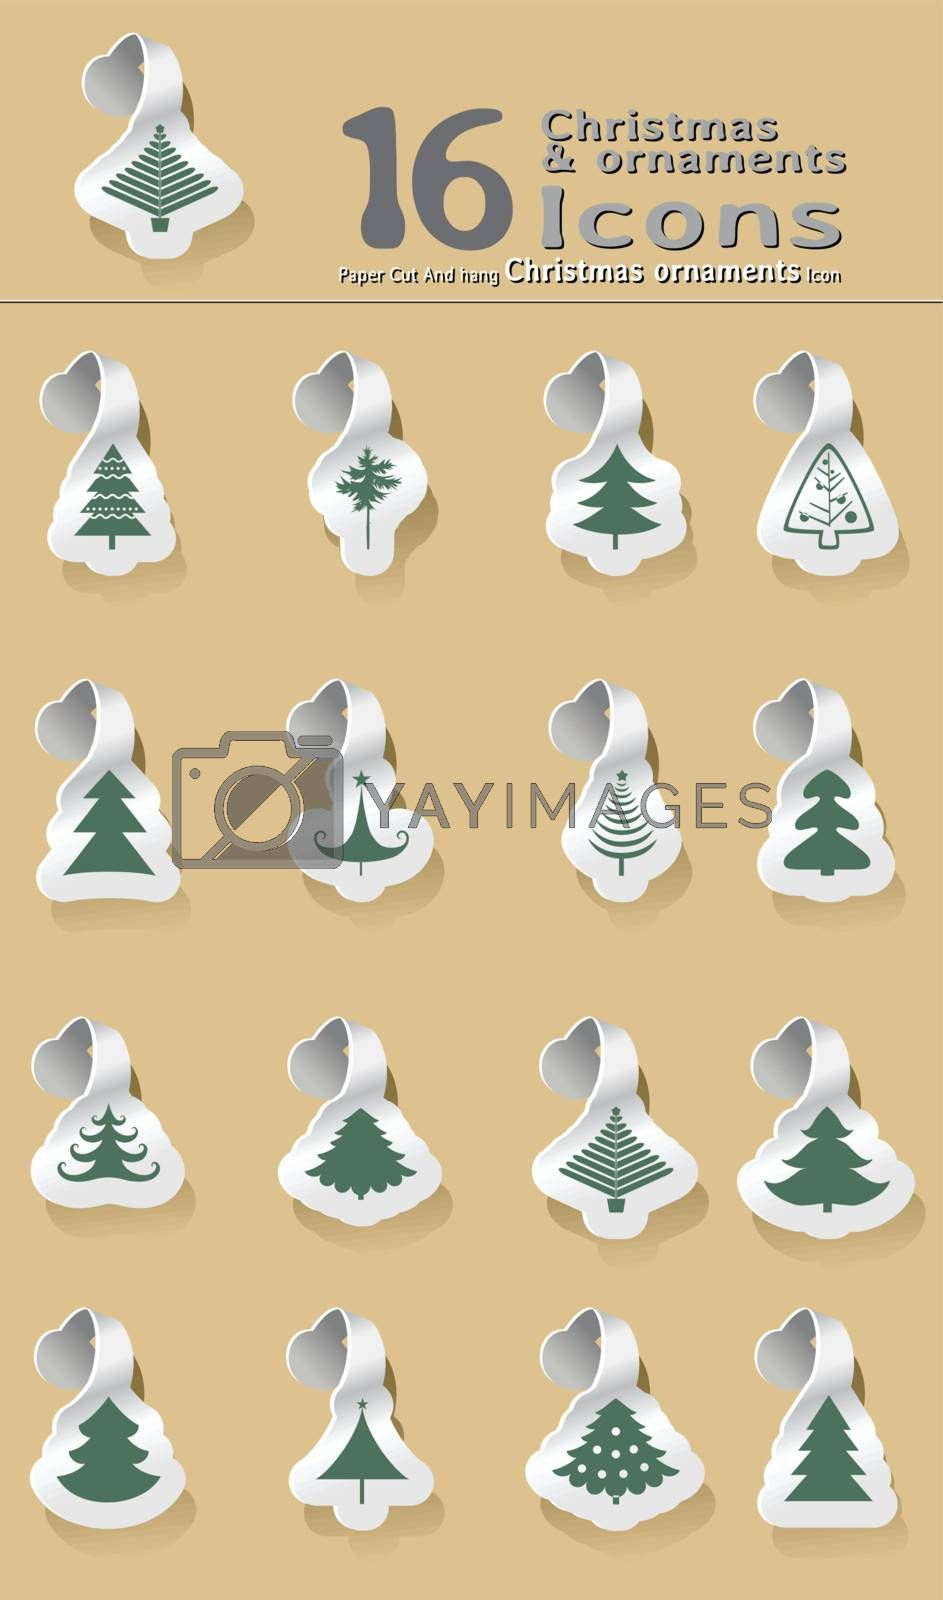 set of paper cut and hanging Christmas tree